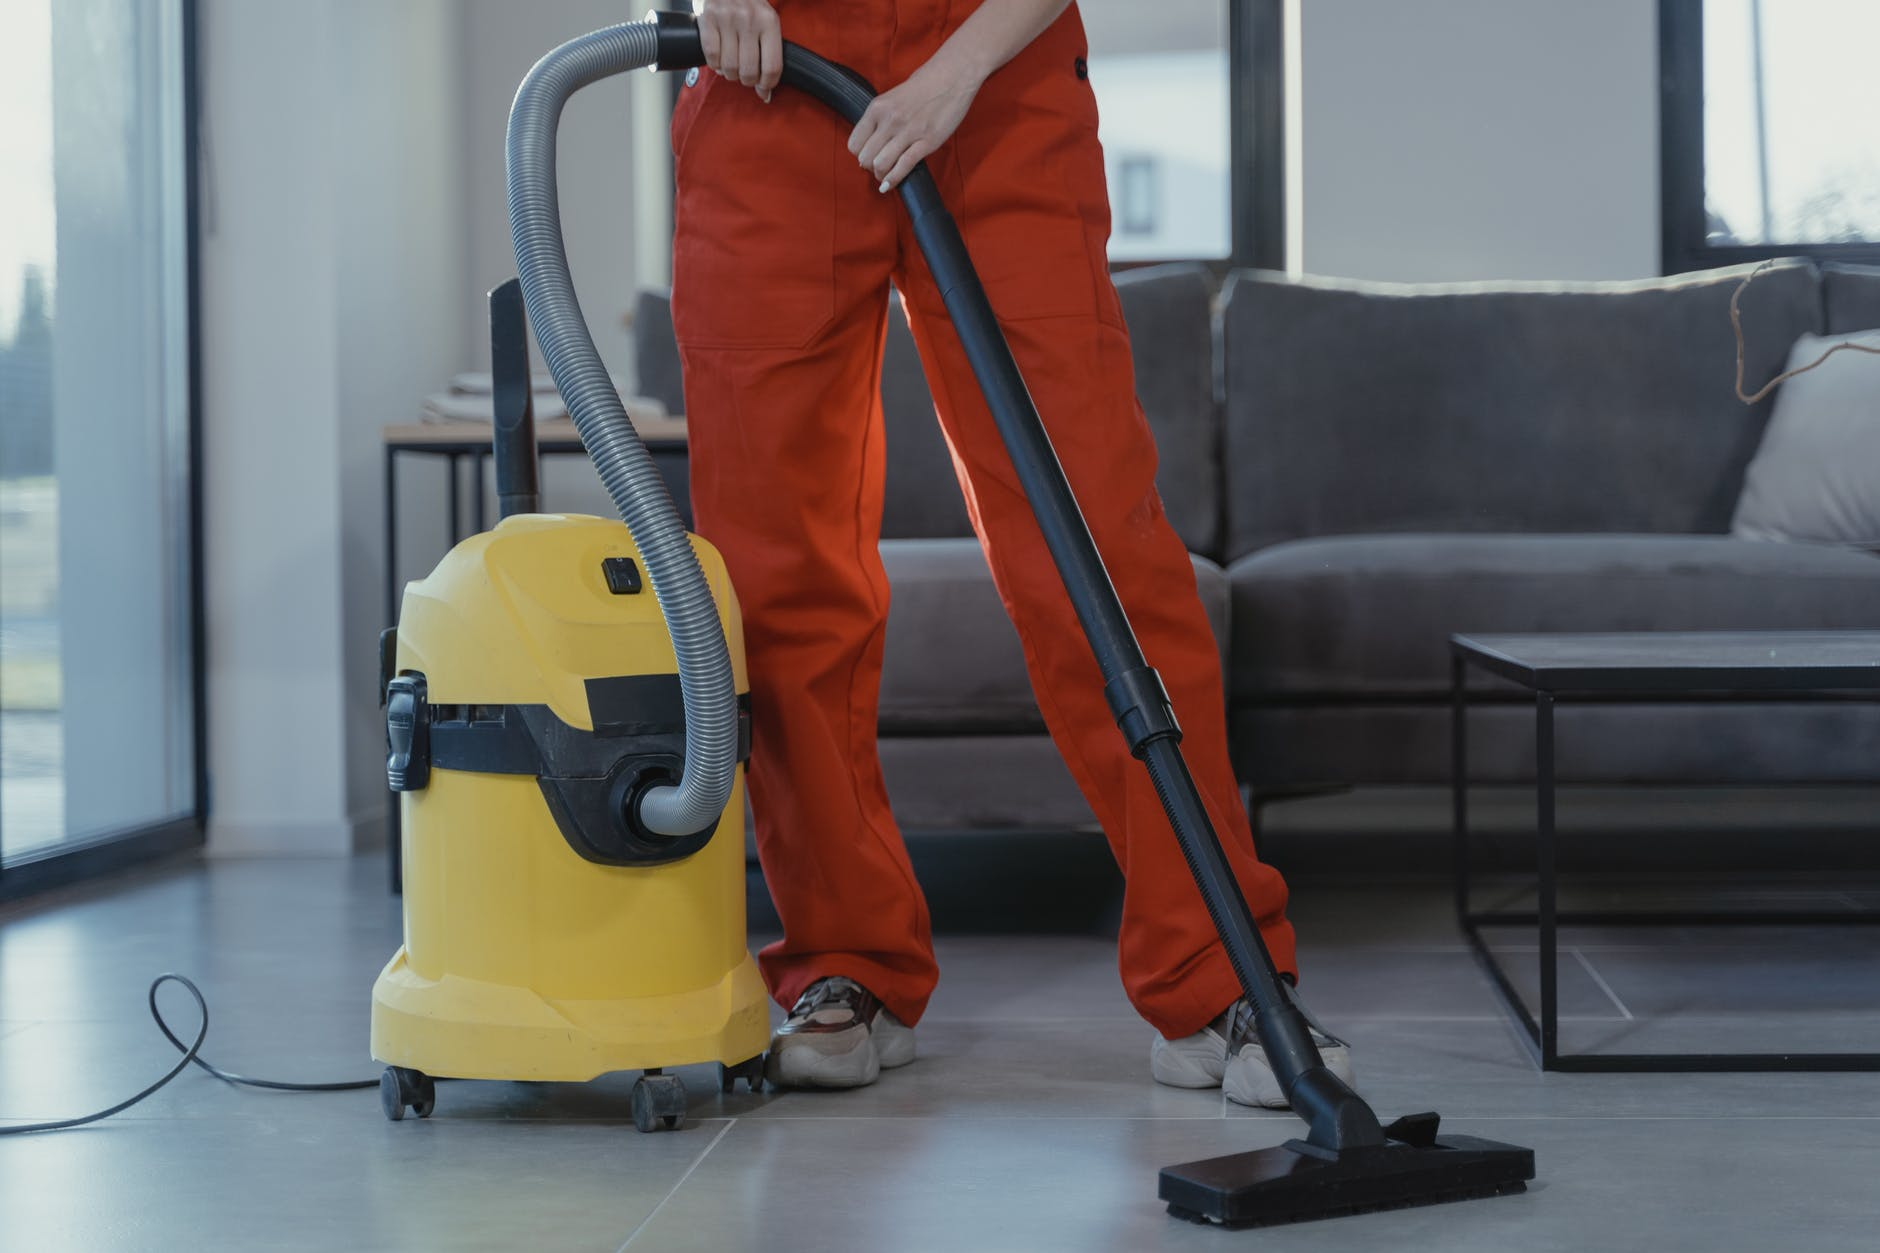 5 Best MOOSOO Vacuums in 2021